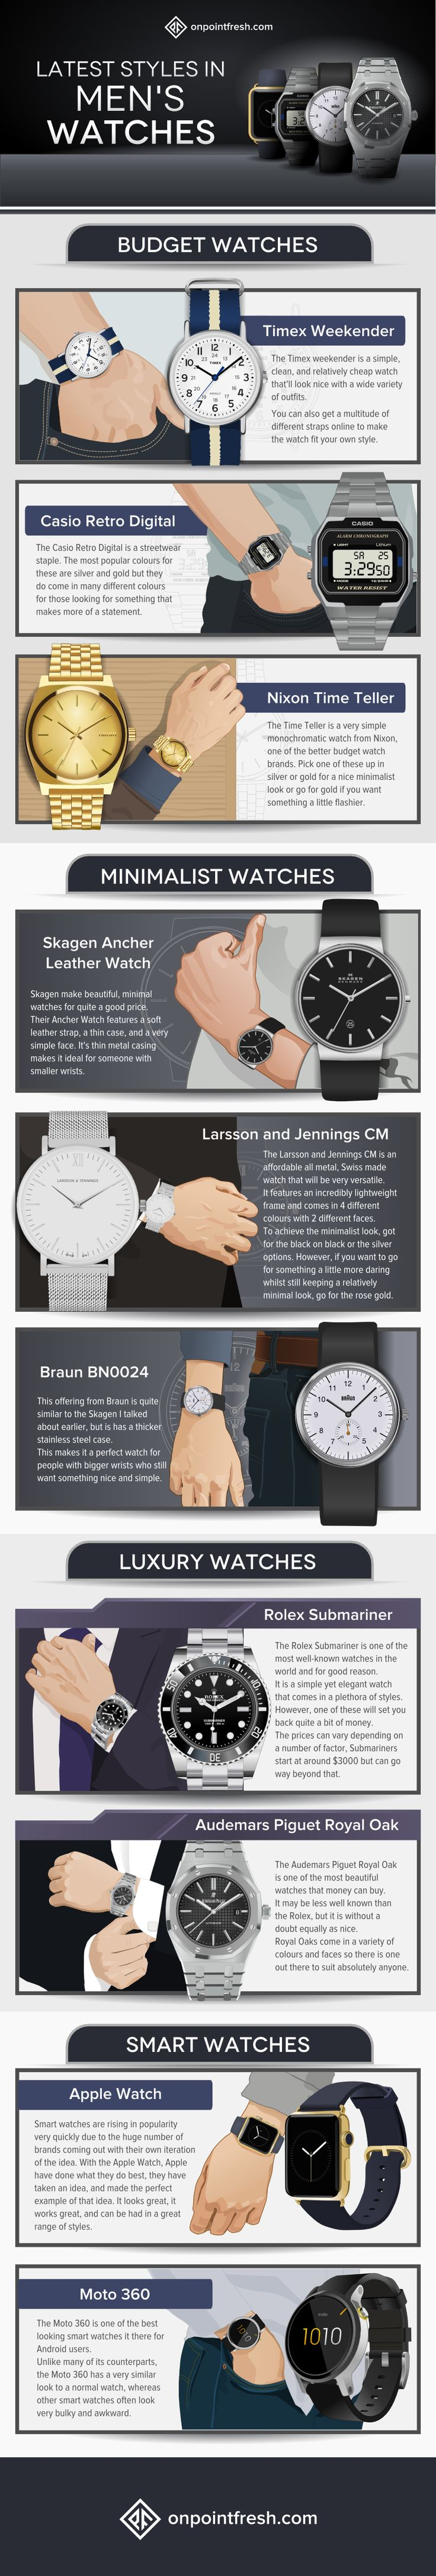 mens watches infographic                                                                                                                                                                                 More